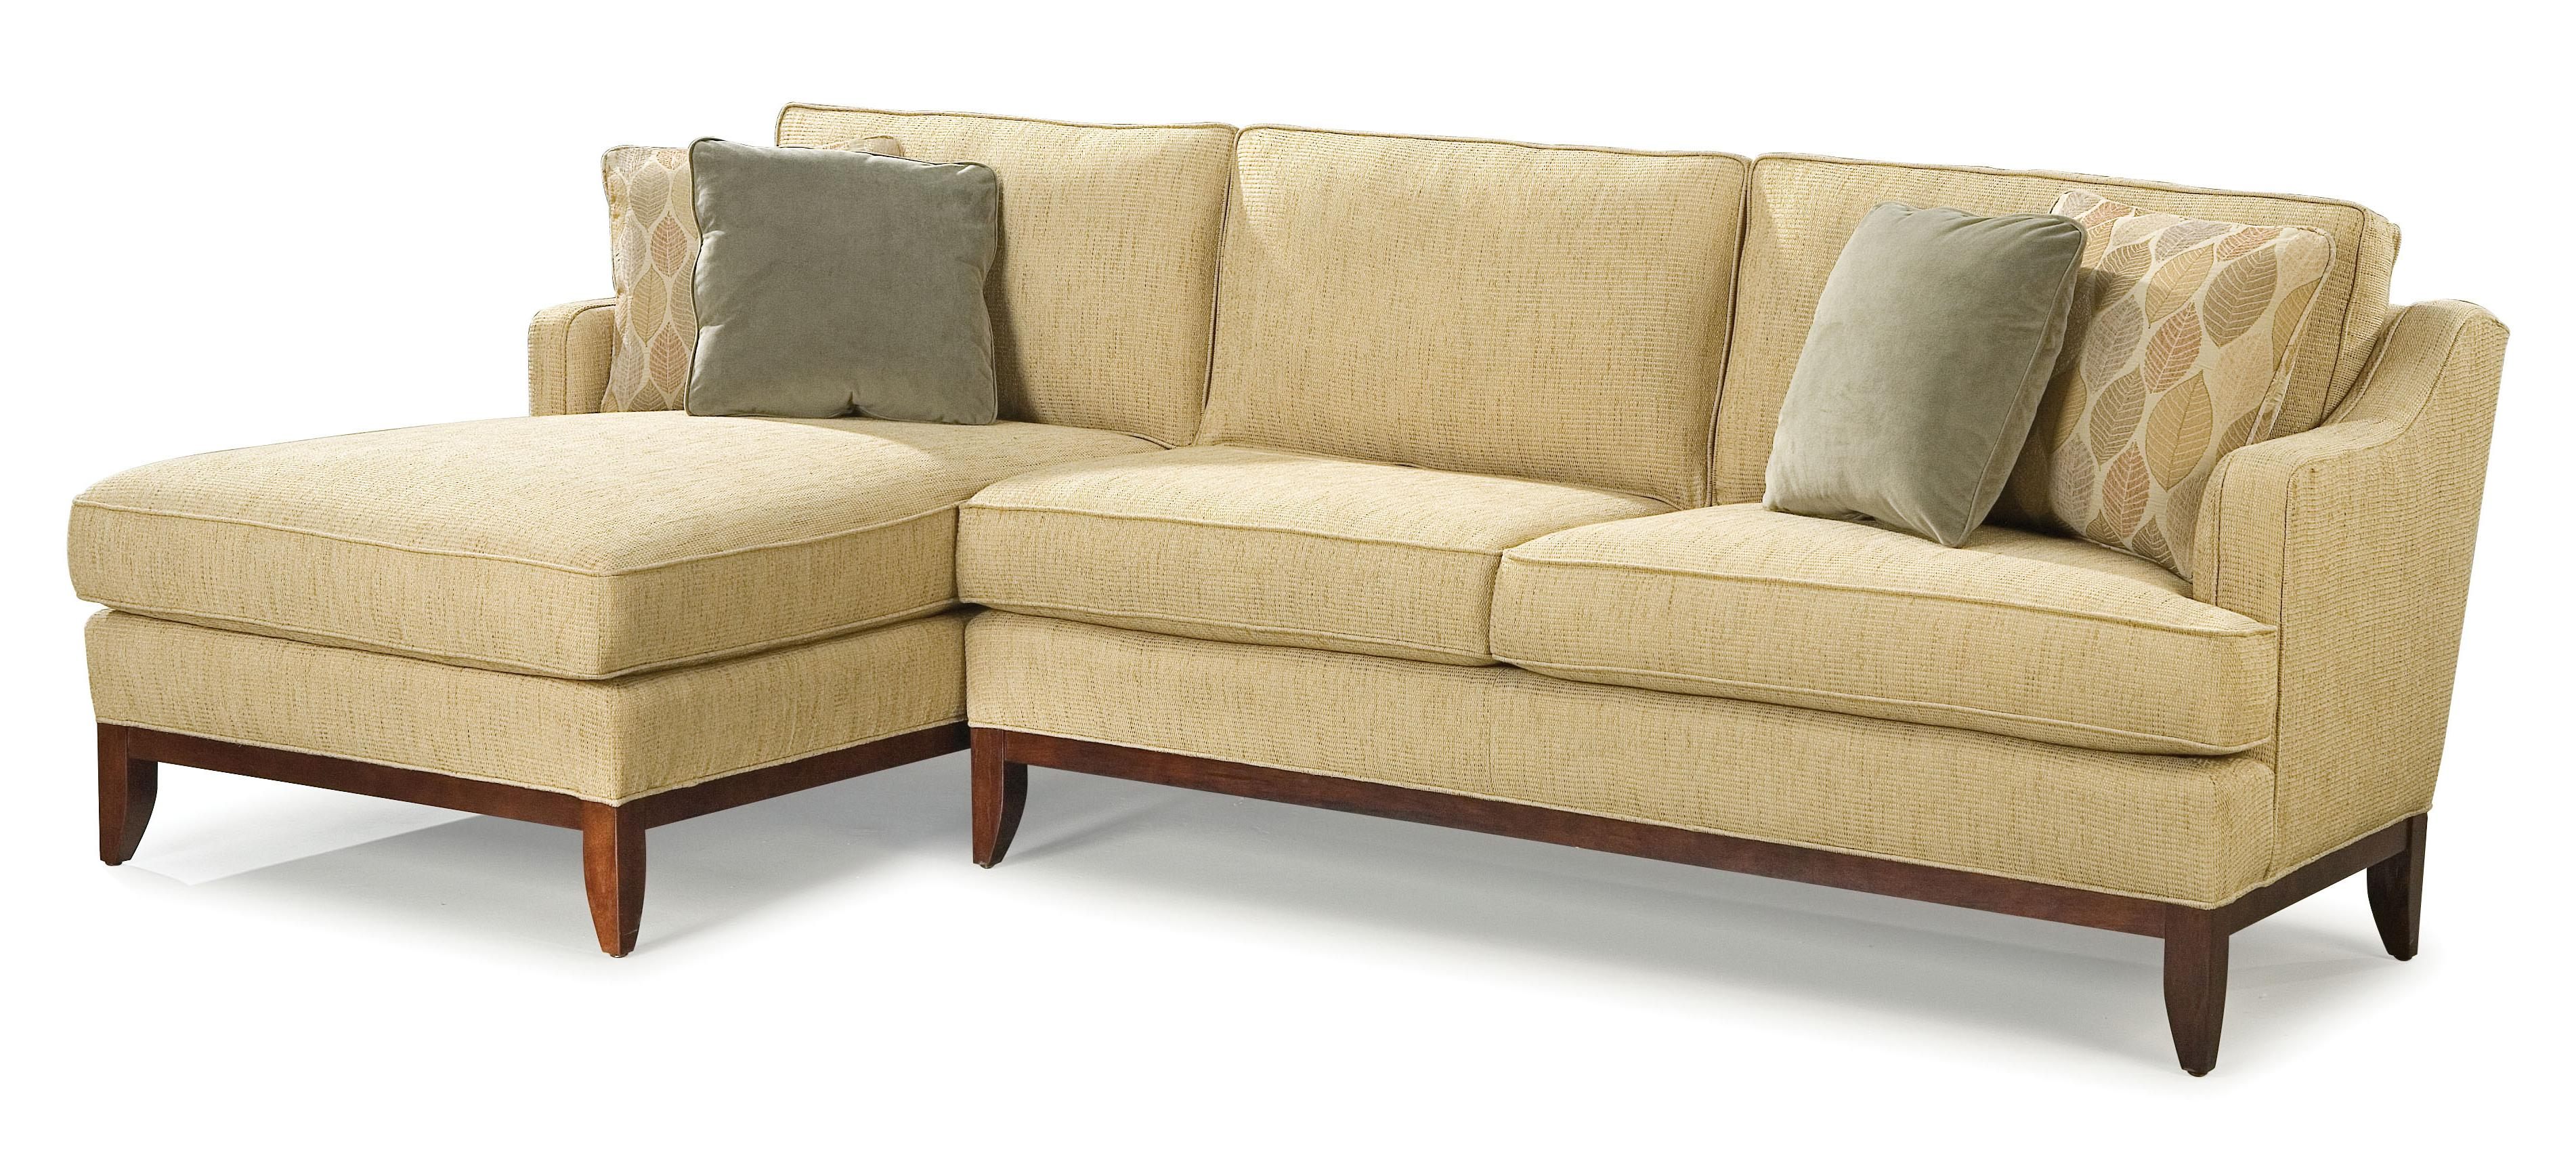 Fairfield 2714 Sectional Sofa - Item Number: 2714-27+51